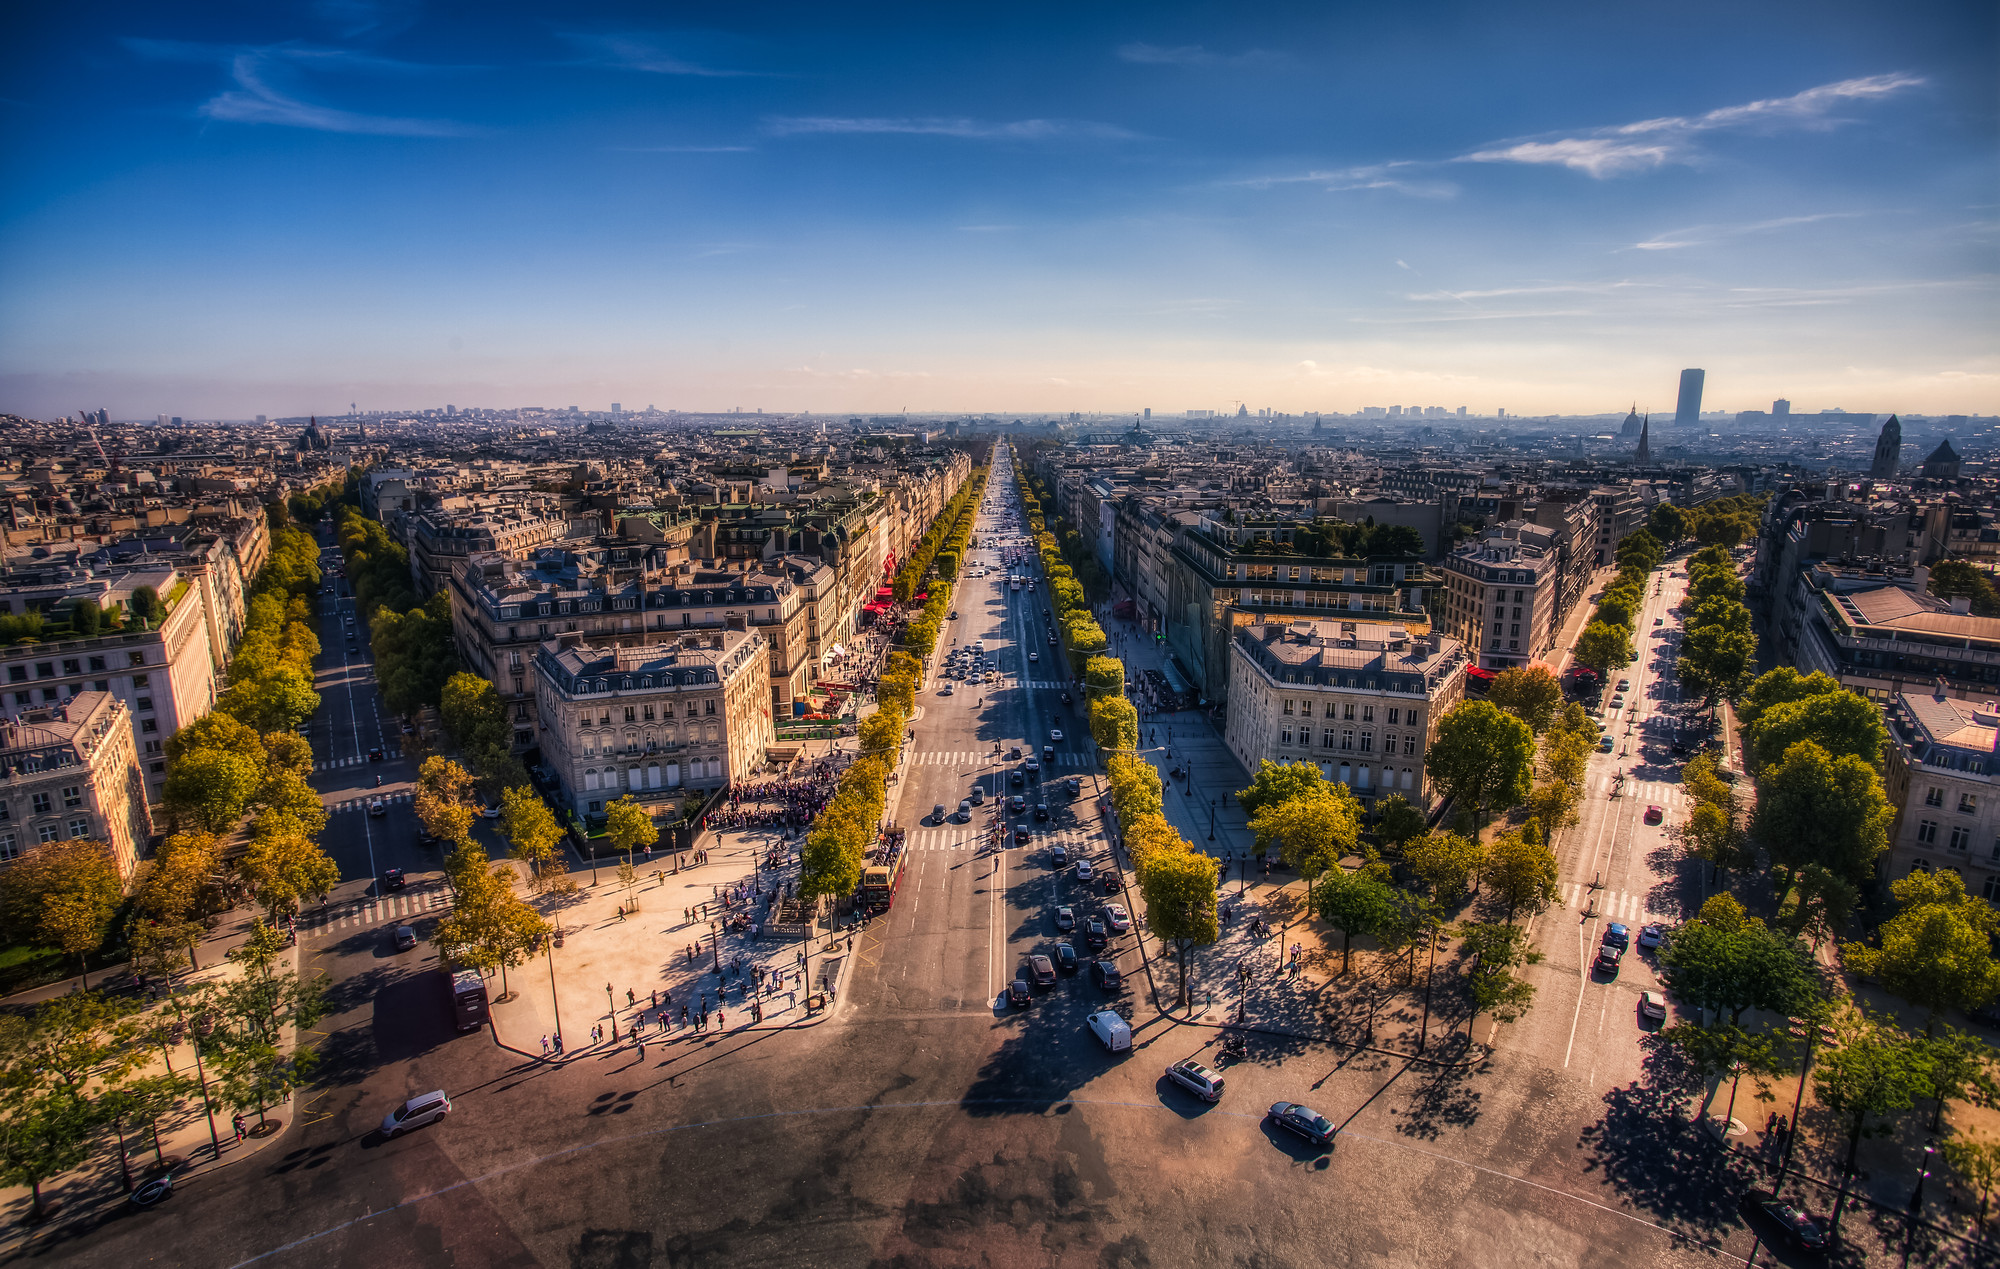 Typological to Evolutionary: A New Theory of Cities , Champs Elysees - Paris, France. Image © Flickr User justininsd